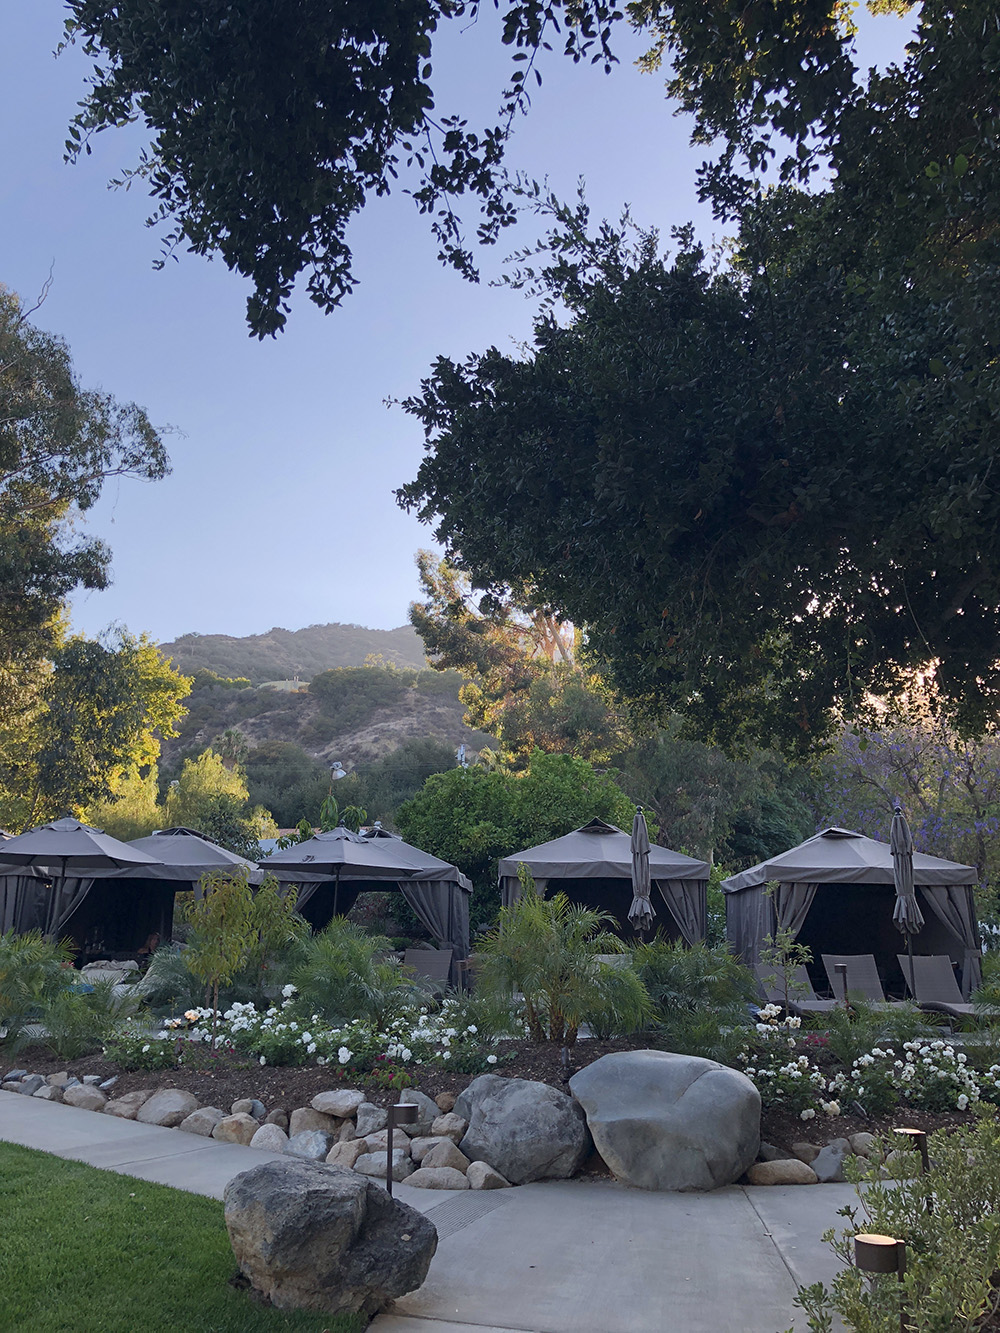 Luxurious cabanas in the Secret Garden are also available for daily rental.